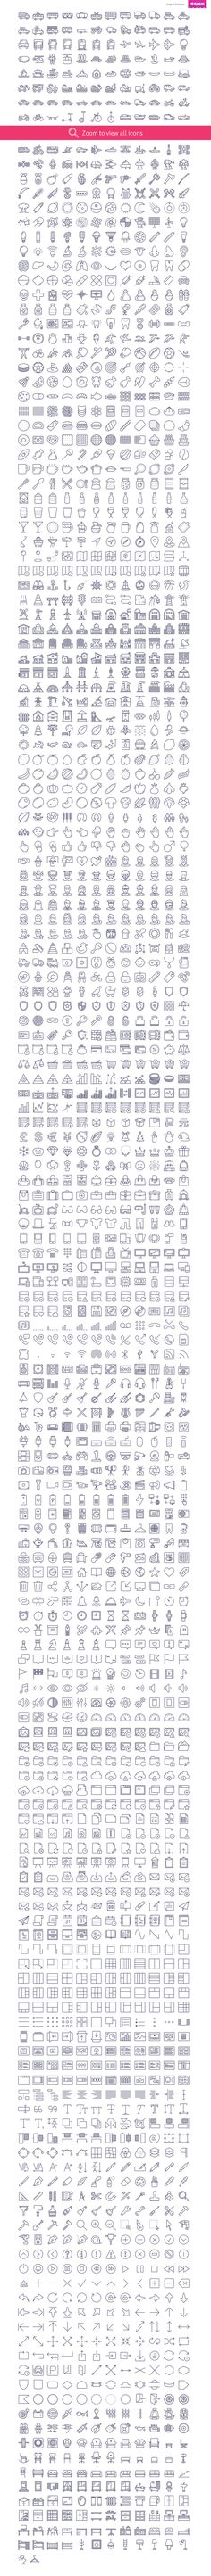 2090 icons in UniGrid set #design Download: https://creativemarket.com/Icojam/107723-2090-icons-in-UniGrid-set?u=ksioks